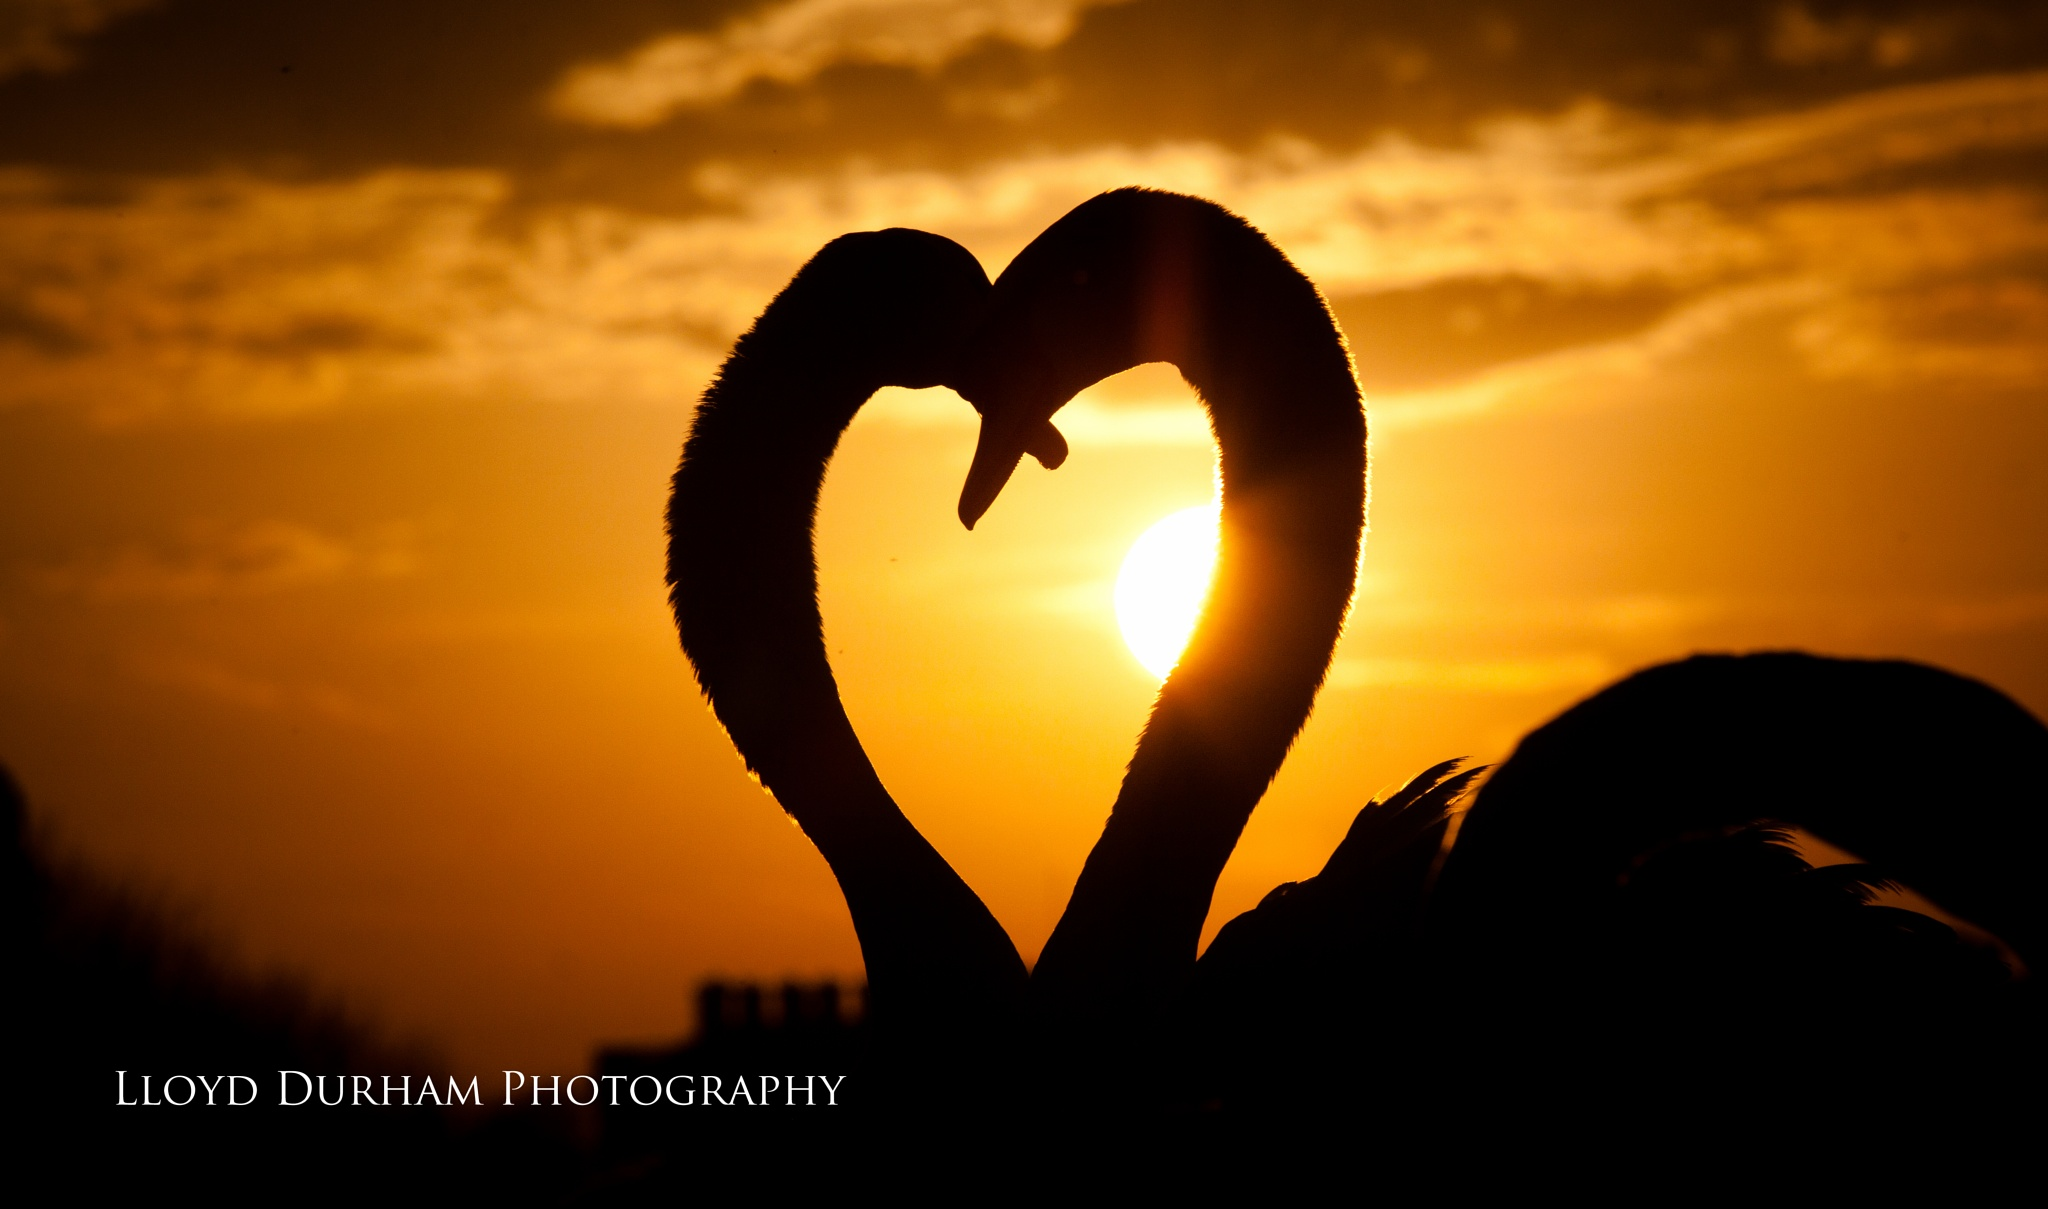 Photo in Animal #uk #england #london #united kingdom #surrey #capital #nature #natural #animal #animals #swan #bird #birds #fine art #silhouette #sunset #sun #dusk #glow #warm #summer #romance #love #heart #shape #symbol #romantic #male #female #dating #beautiful #rare #unique #perfect timing #canon #composition #gold #golden #golden hour #landscape #landscapes #neck #hampton court palace #hampton